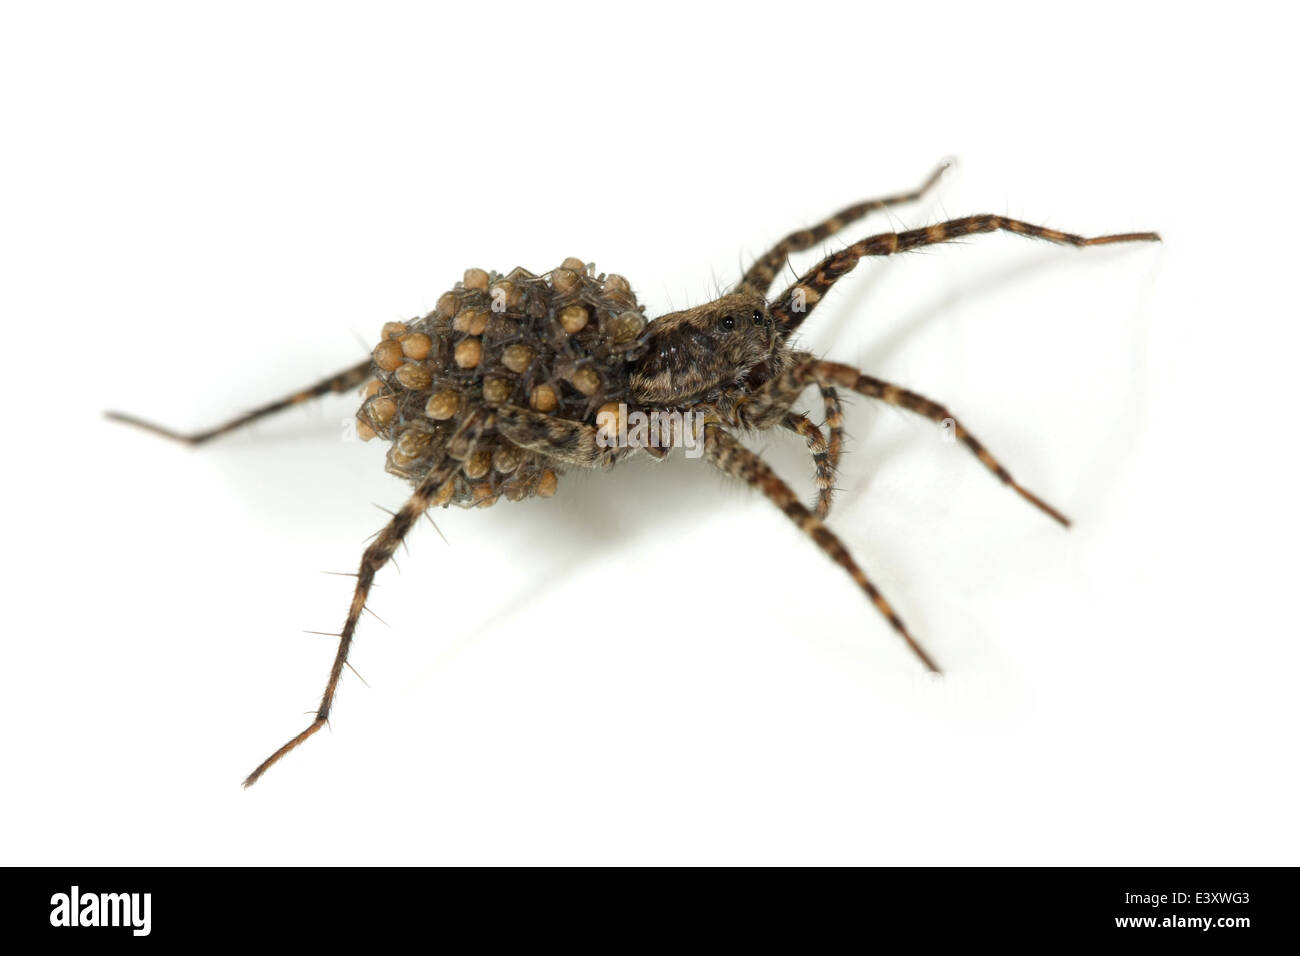 Pardosa amentata (Spotted wolf spider), part of the family Lycosidae. Carrying its spiderlings. Isolated on white - Stock Image